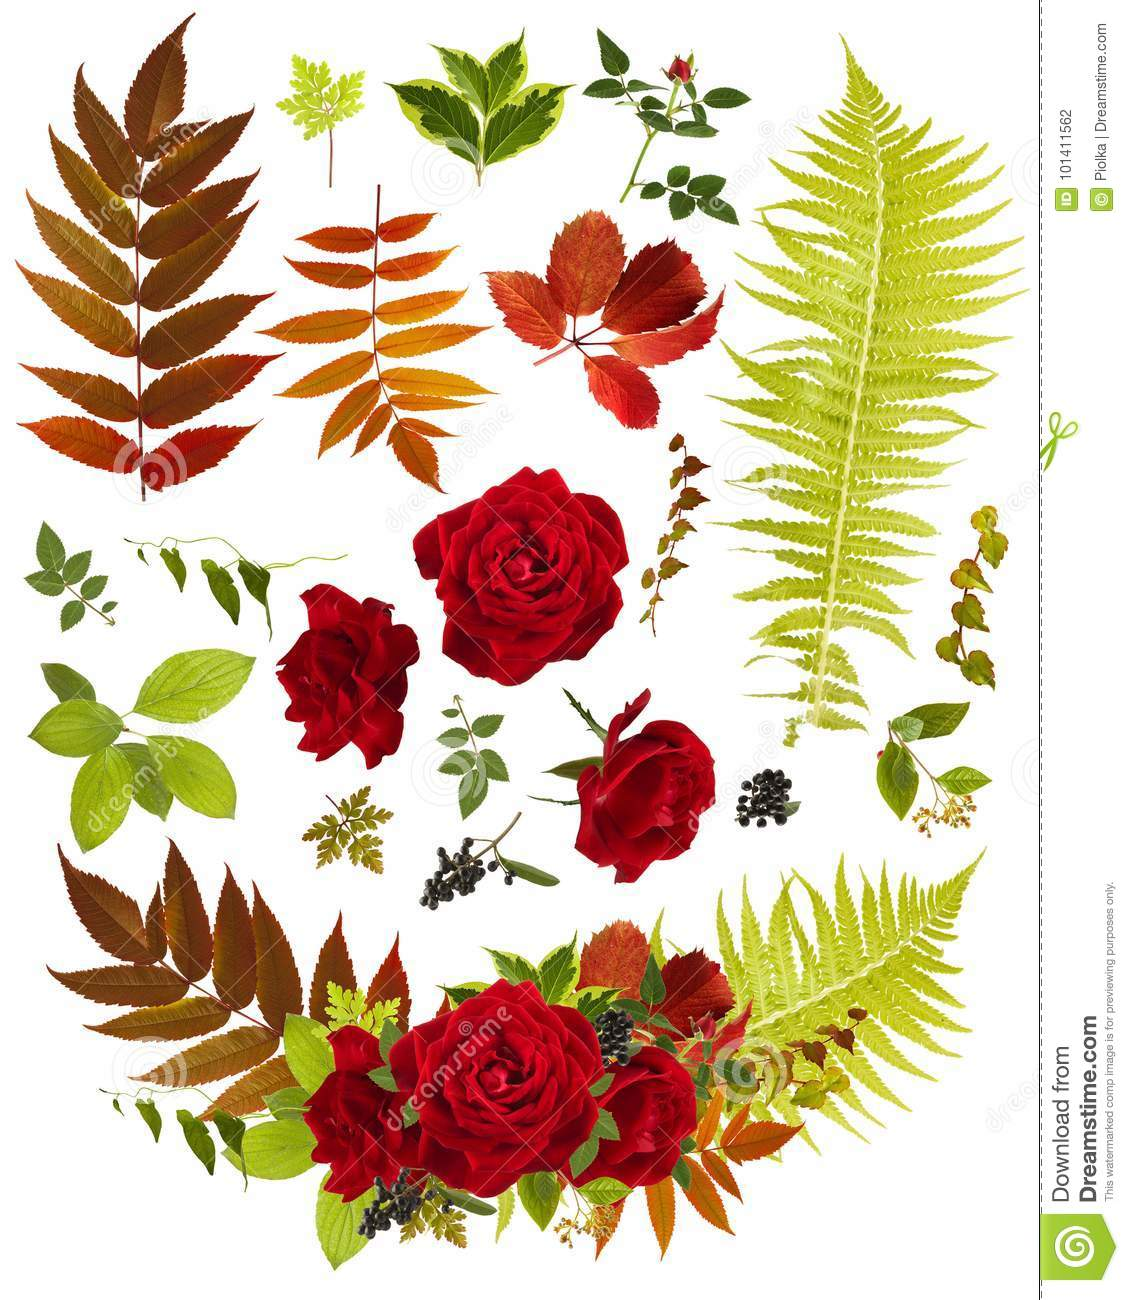 Rose flower bouquet clip art with single leaves stock photo image rose flower bouquet clip art with single leaves izmirmasajfo